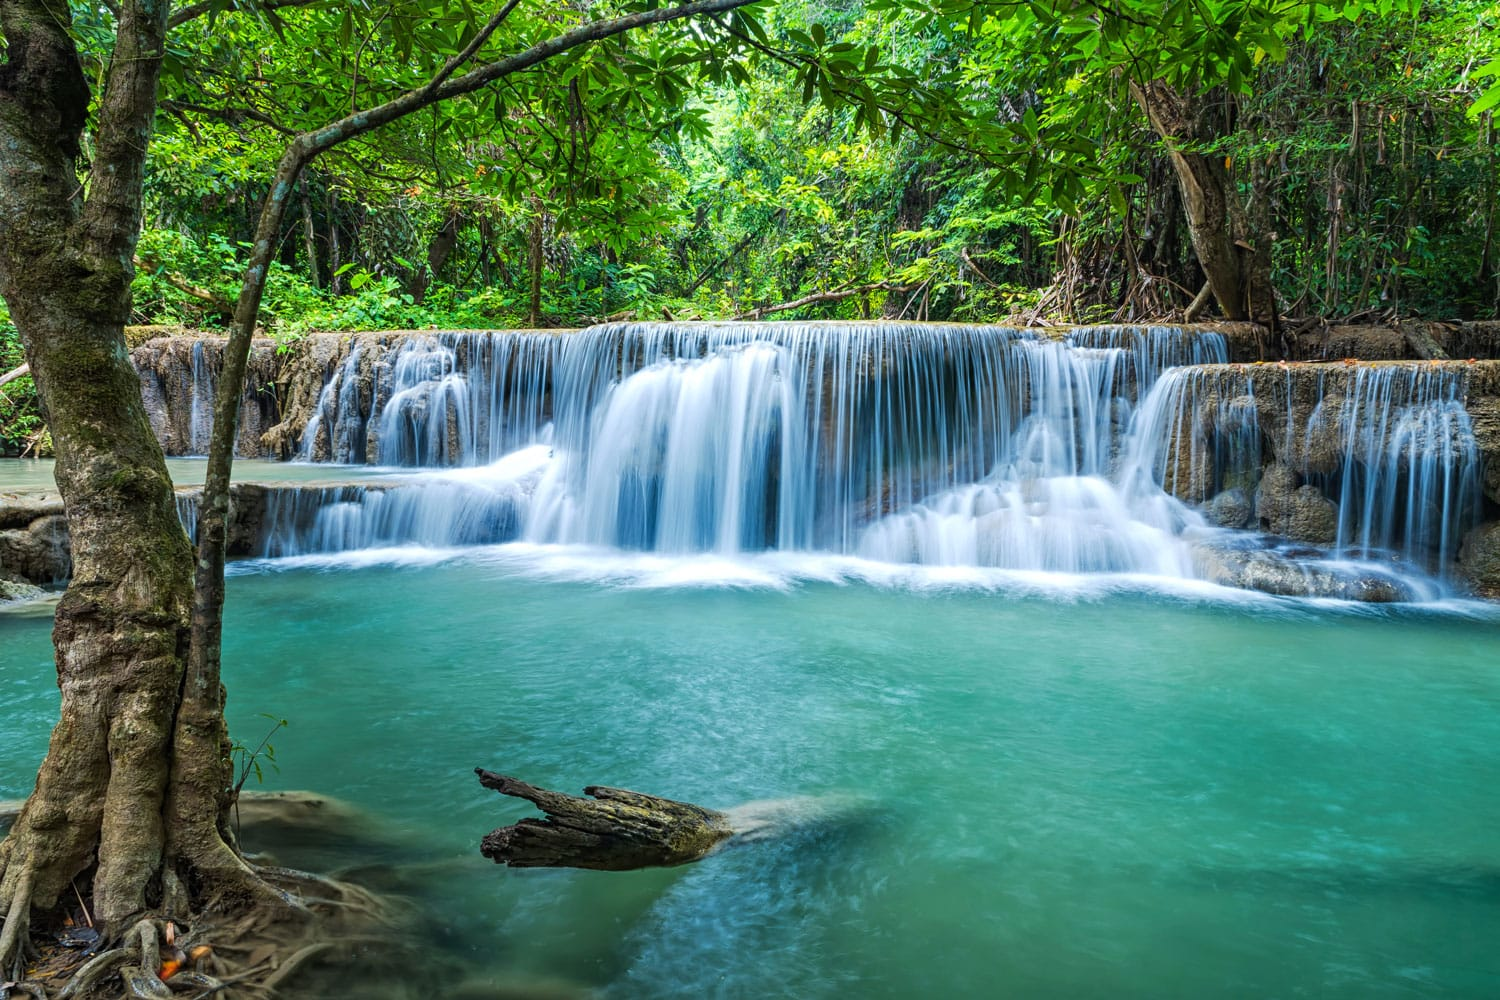 Beautiful Erawan waterfall located Kanchanaburi Province, Thailand